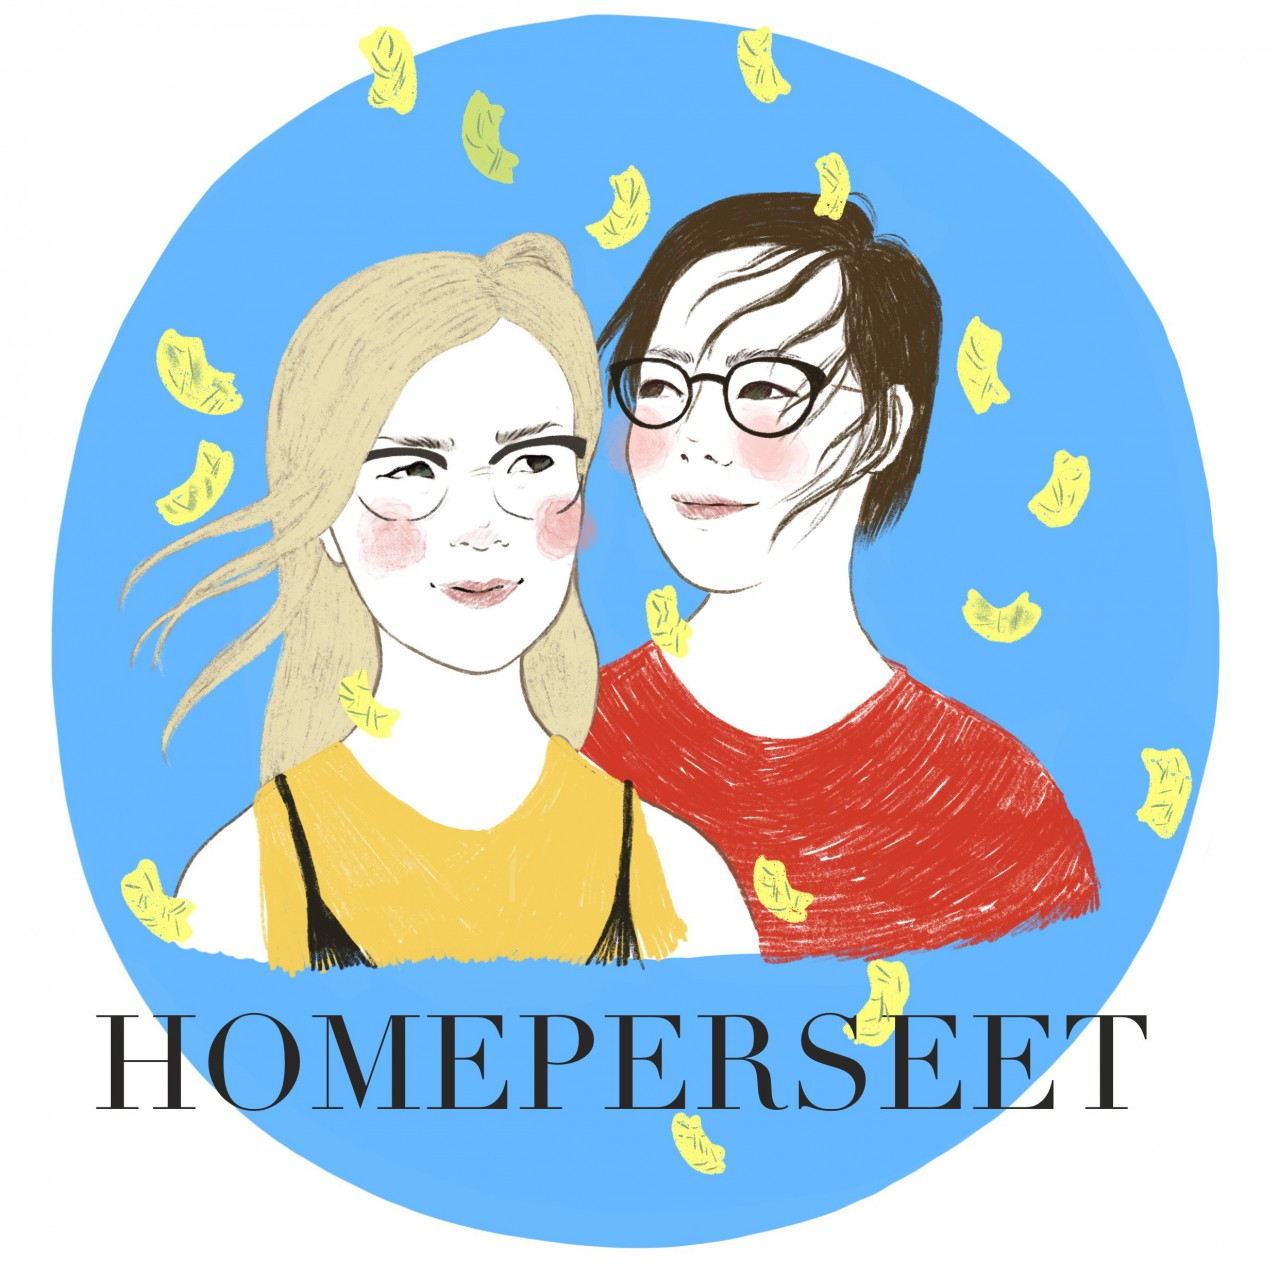 BCR Podcast: Homeperseet - Jakso 2